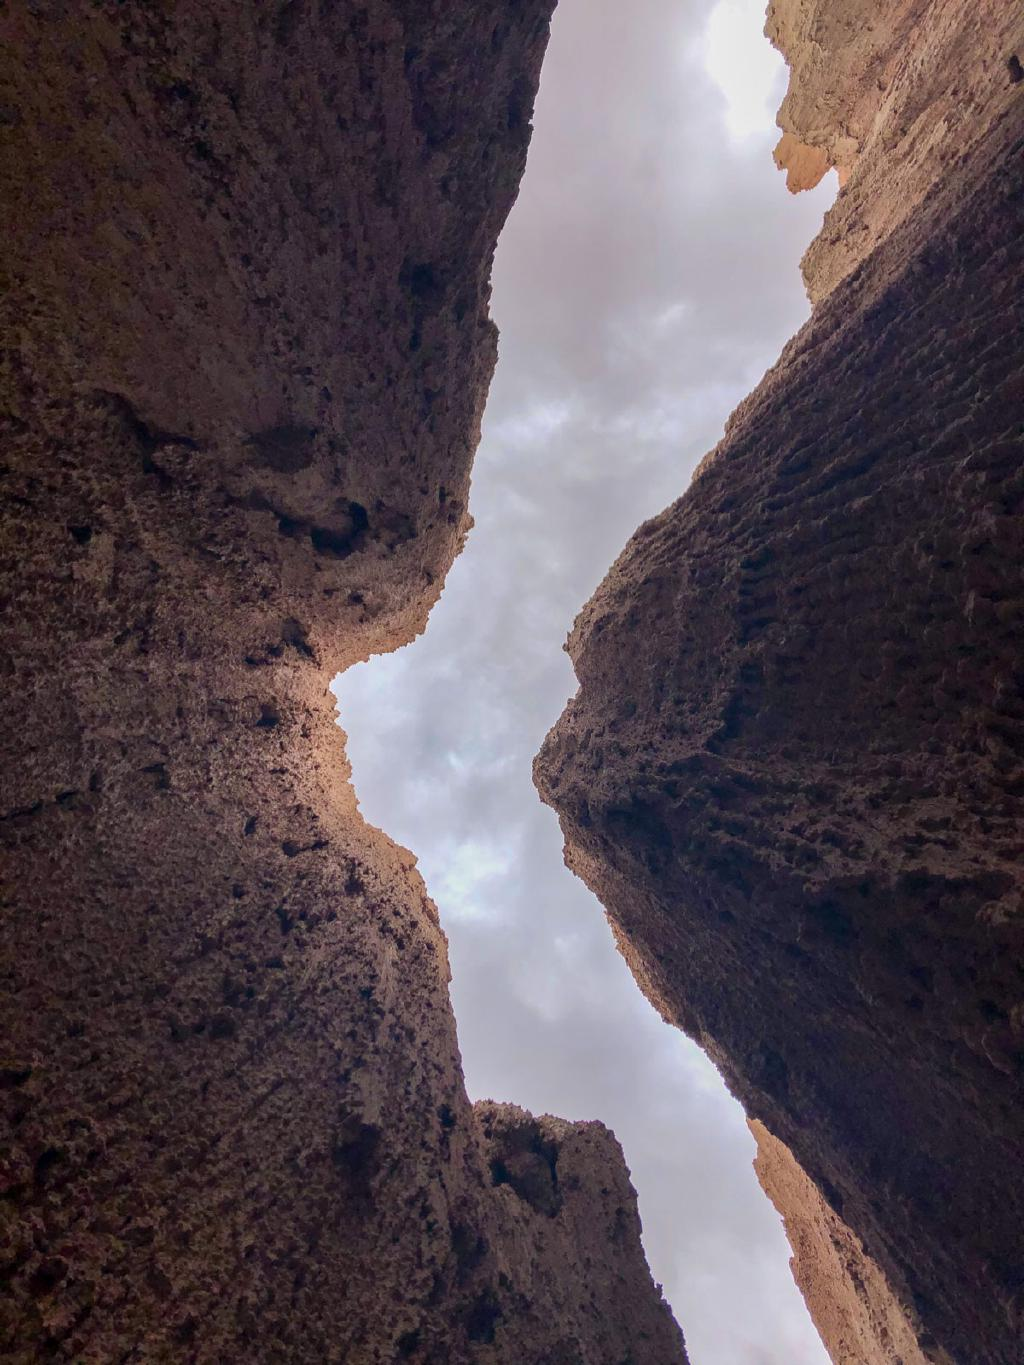 The camera looks straight up. A bent strip of sky is visible through the narrow gorge.